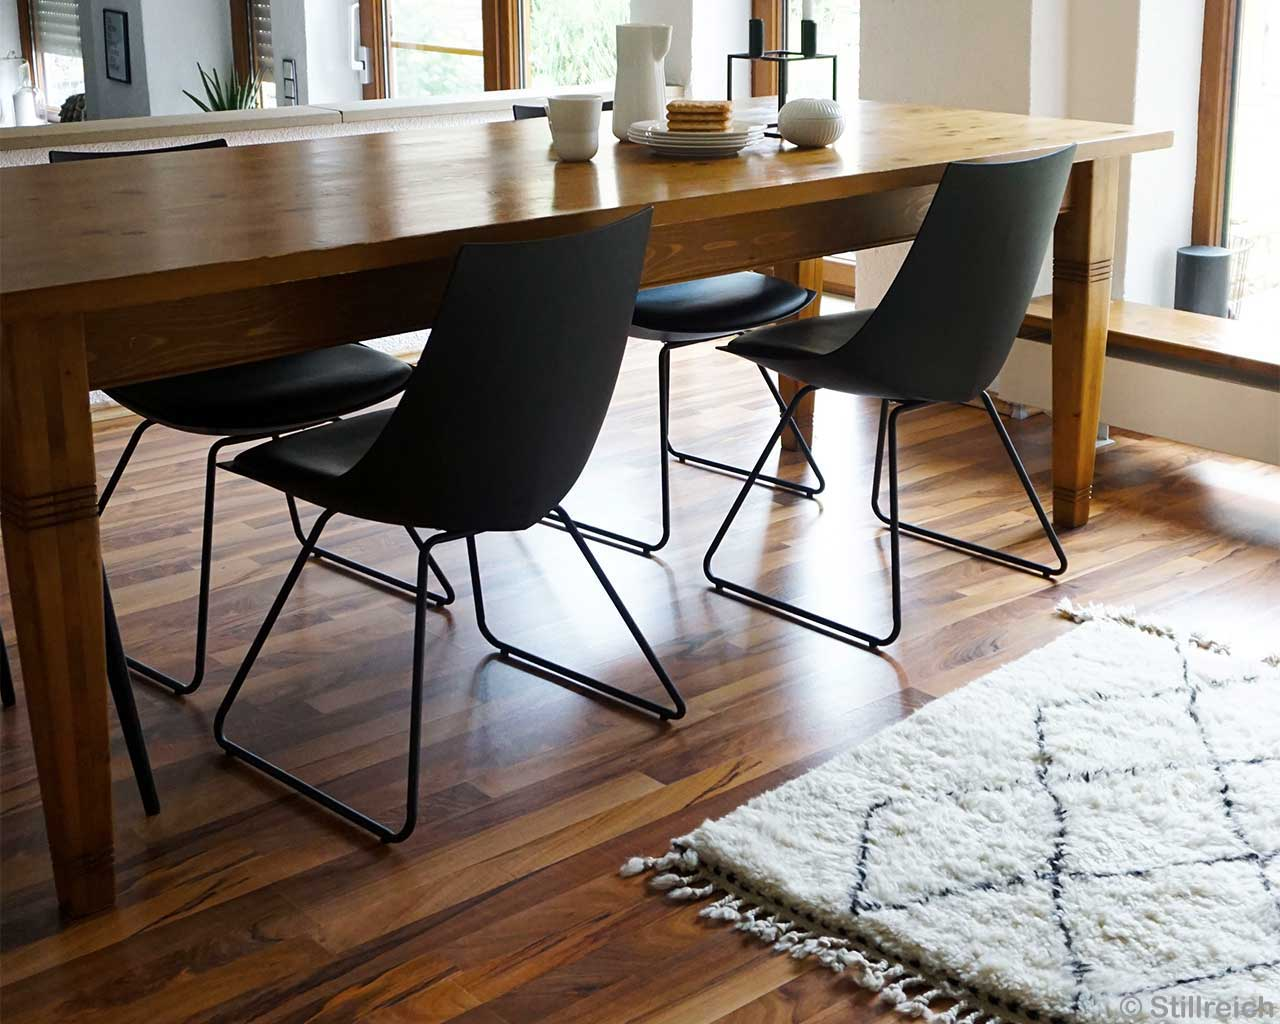 Oak Table Black Designer Chairs Parquet Beni Ourain 2